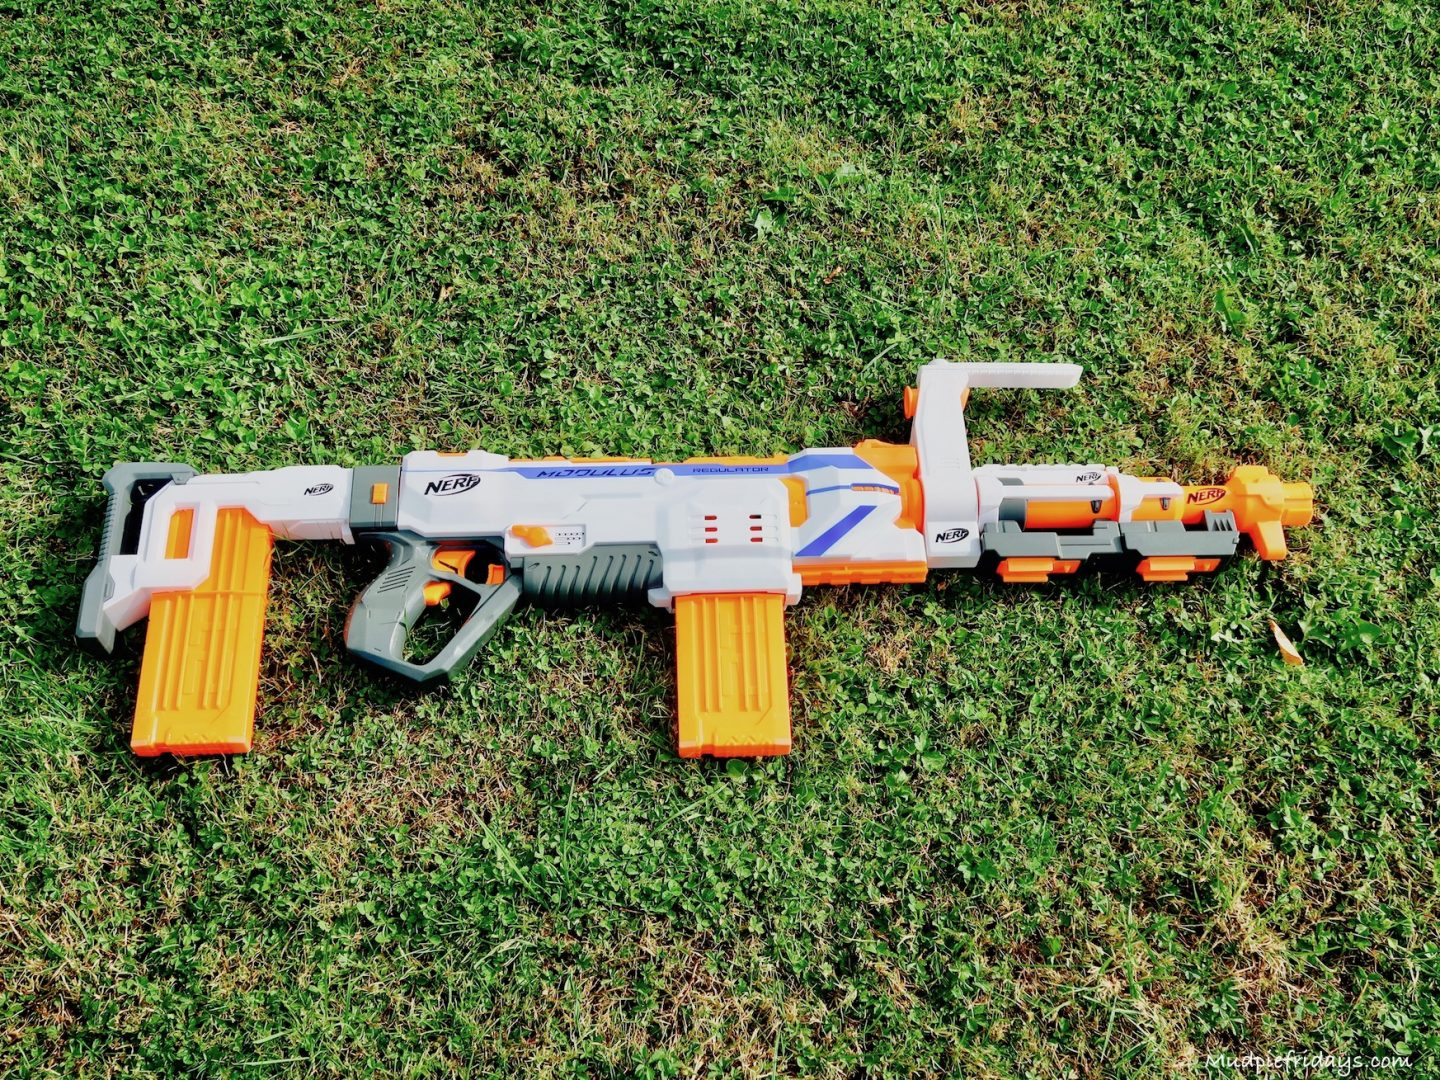 Mechanical engineer blasts his way into Blockbusters 2017 edition with the  world's Largest Nerf gun